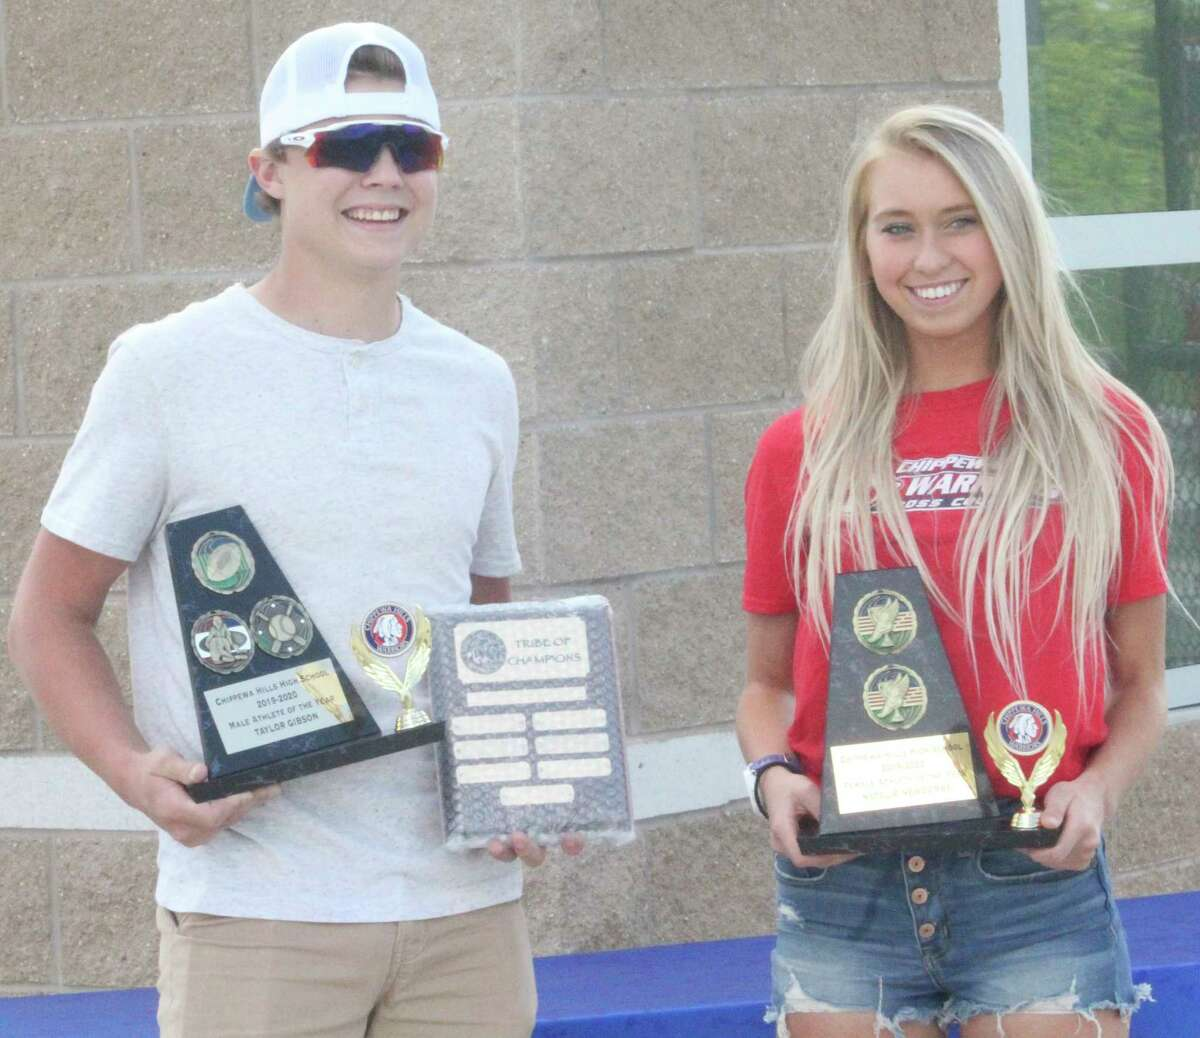 Natalie Newcombe (right) and Taylor Gibson were honored as Chippewa Hills Female and Male Athletes of the Year on Friday. (Pioneer photo/John Raffel)